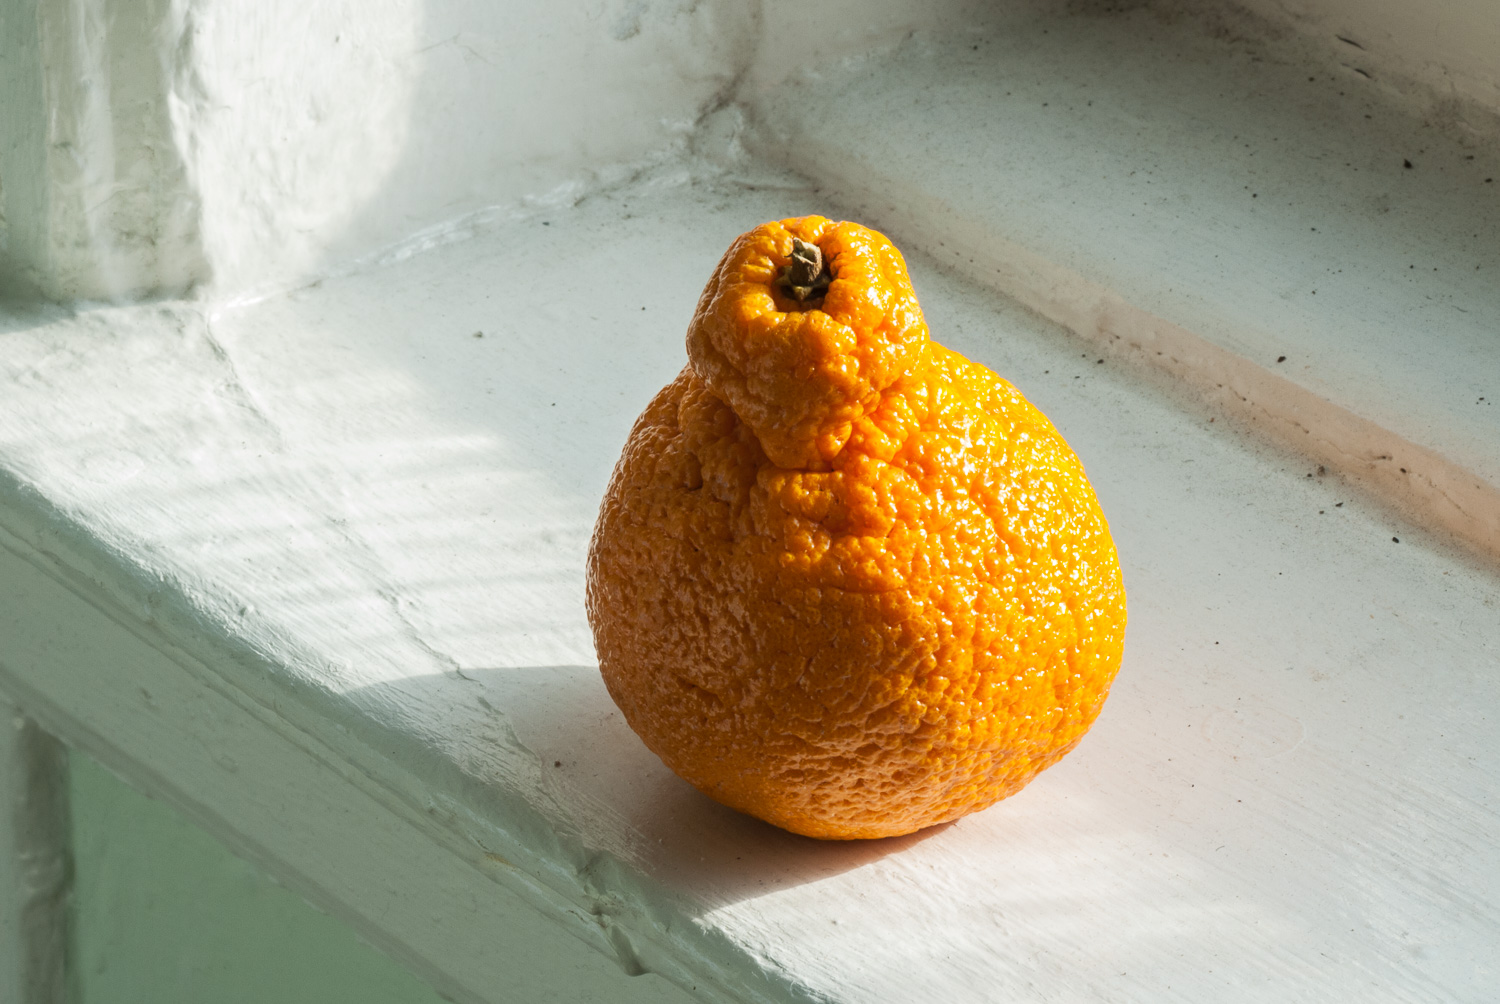 Orange on Ledge